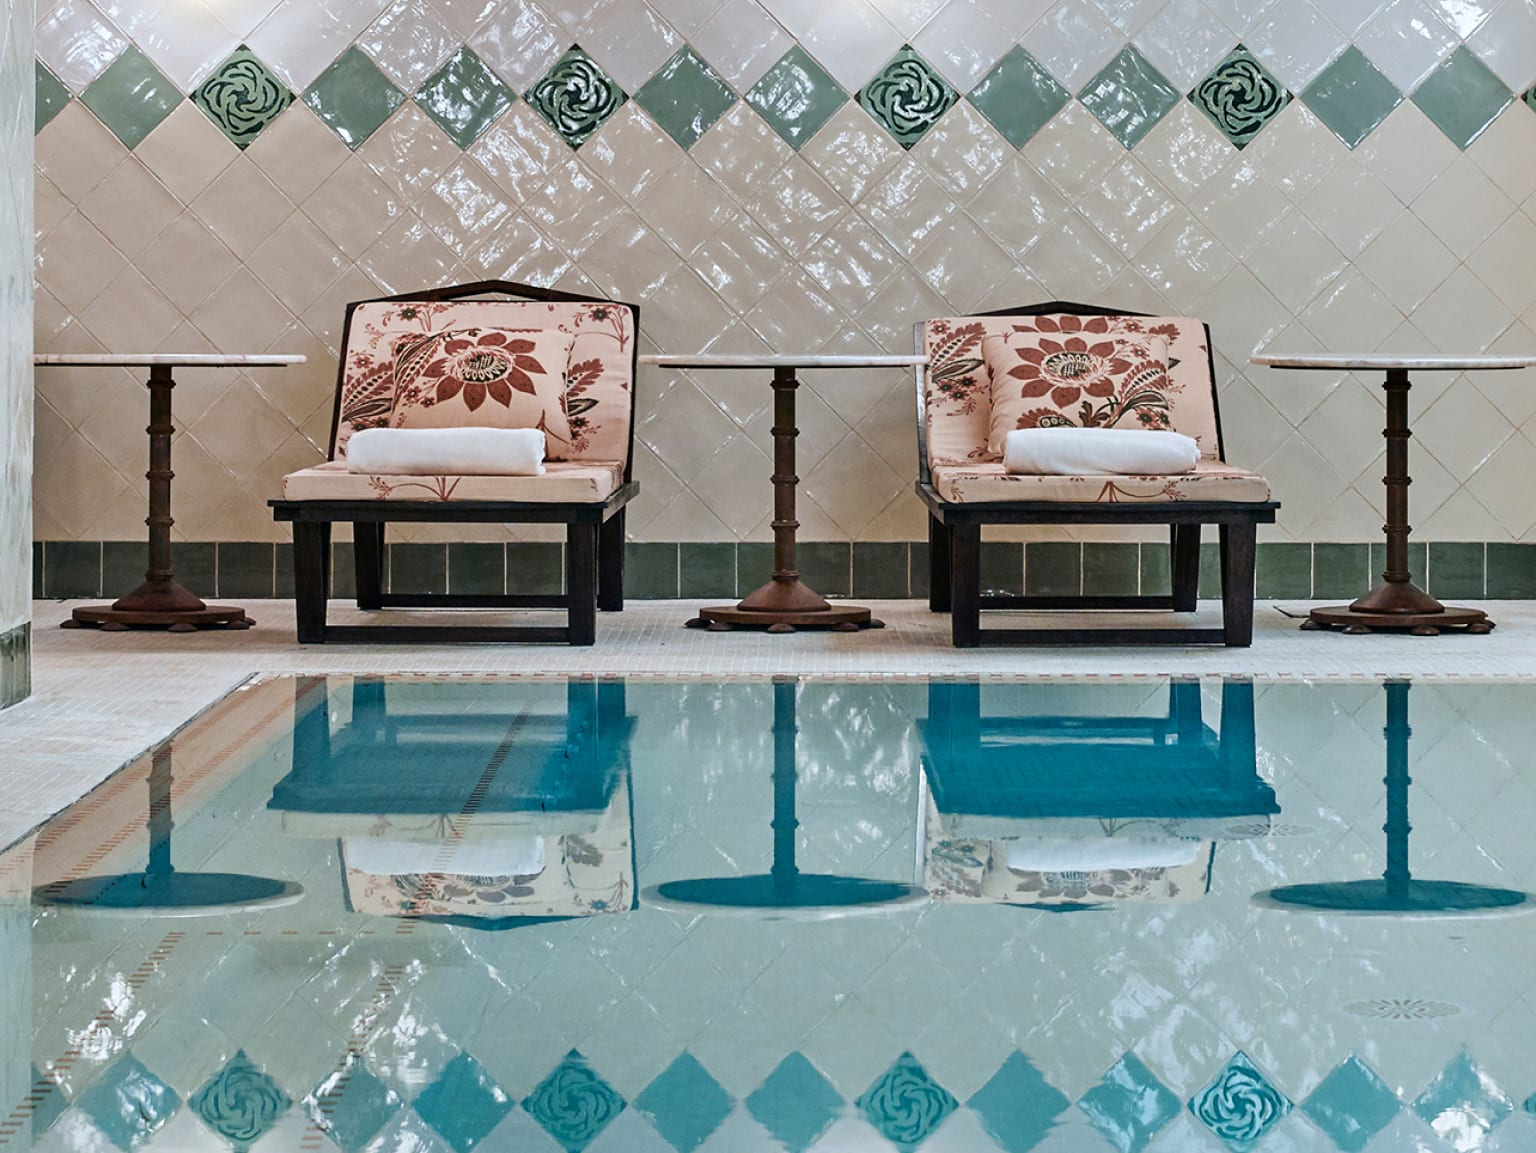 Two loungers next to an indoor pool.